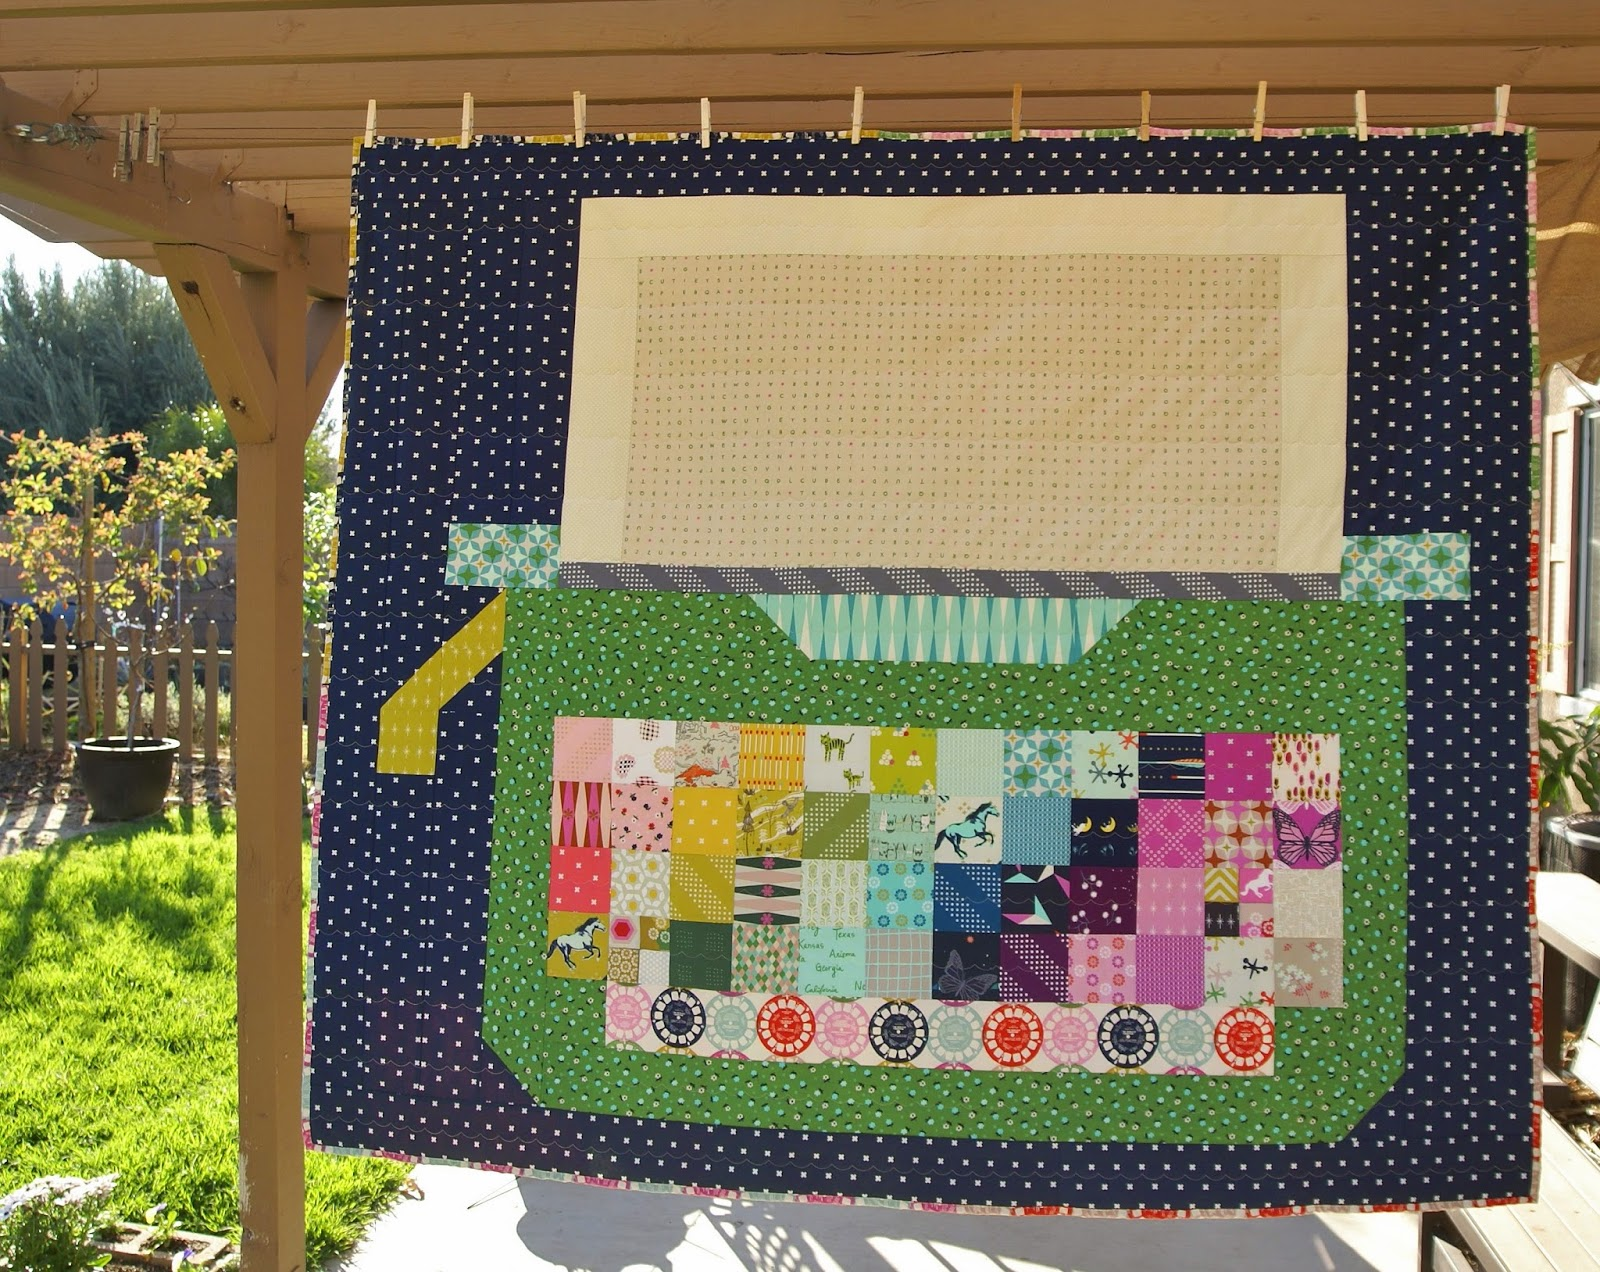 Cotton + Steel Typewriter Quilt by Heidi Staples of Fabric Mutt